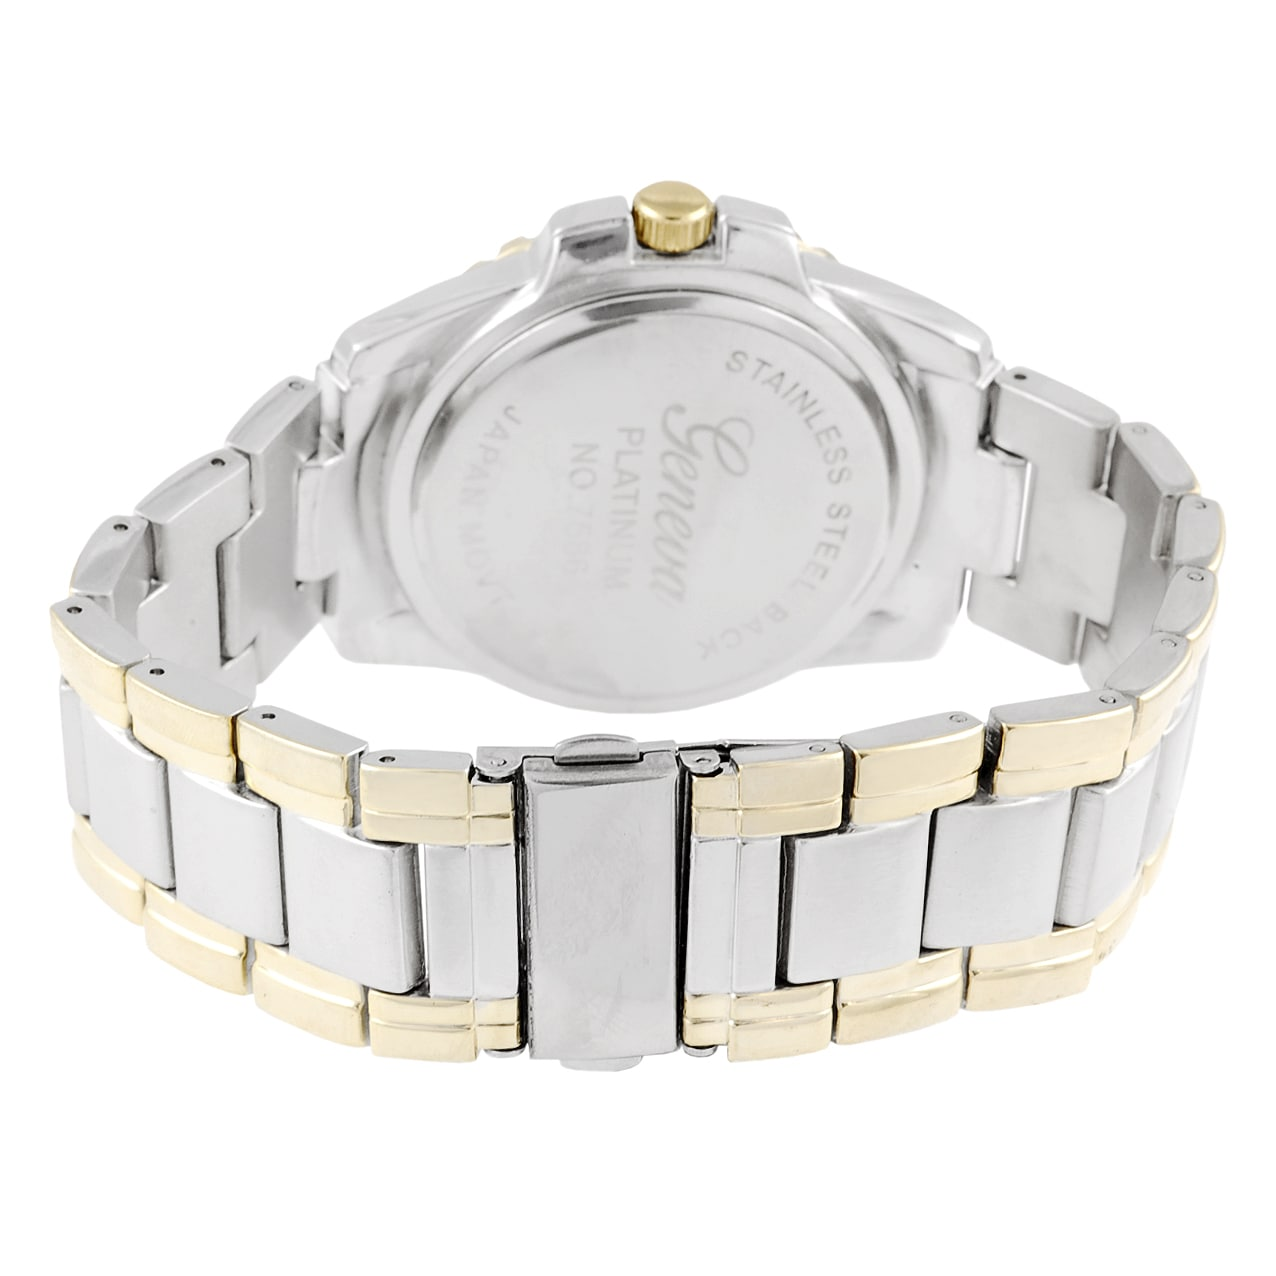 Geneva Platinum Men's Round Bezel Link Watch